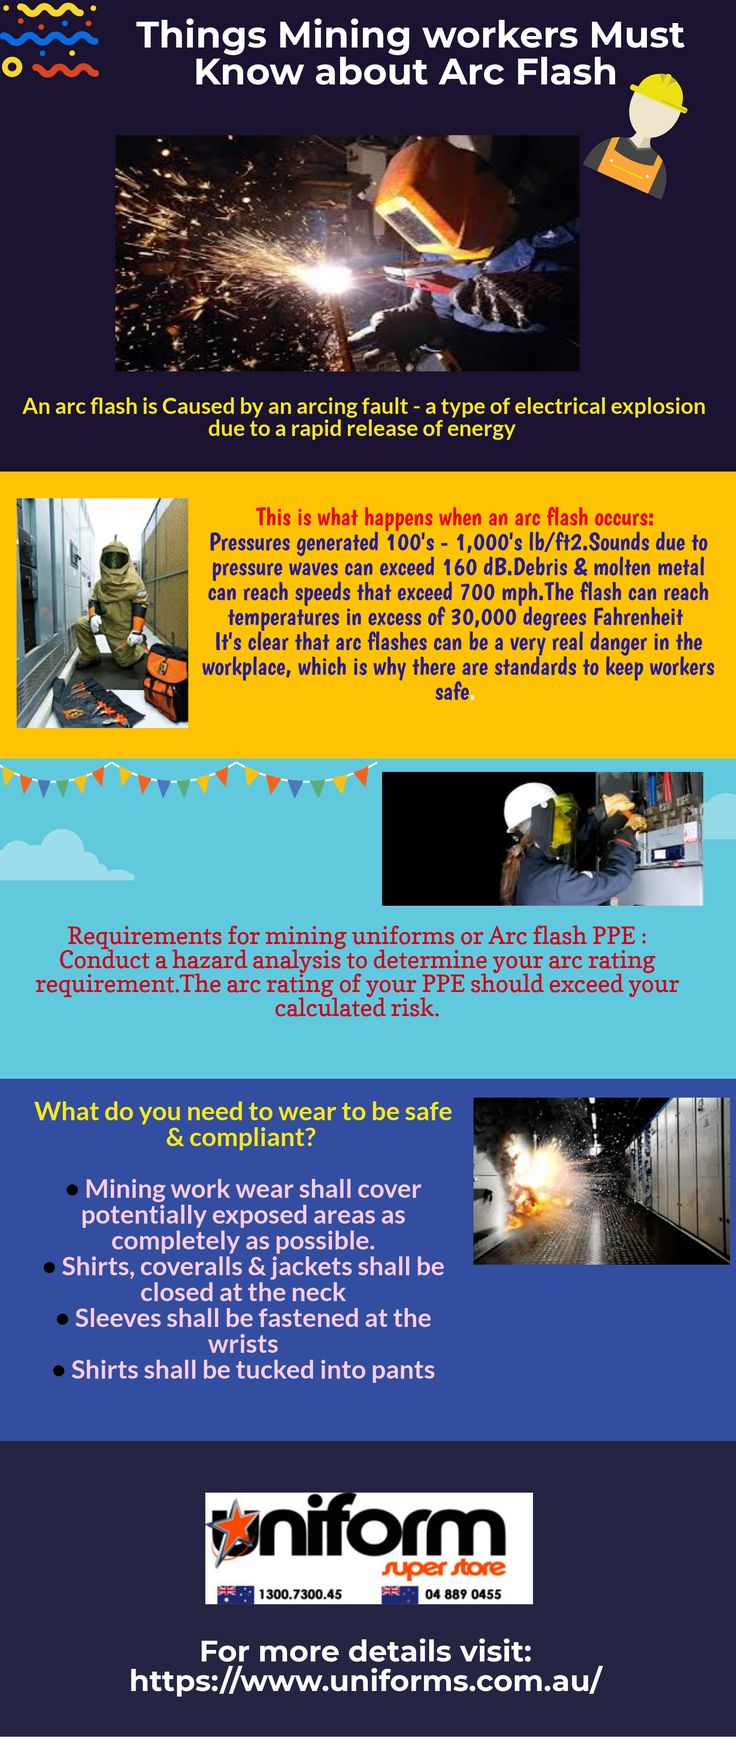 Mining jobs include lots of risks and one of them is Arc flash here your mining work wear and your knowledge about the hazards can only keep you safe. see more at: https://www.uniforms.com.au/Uniform-Article/work-wear.html